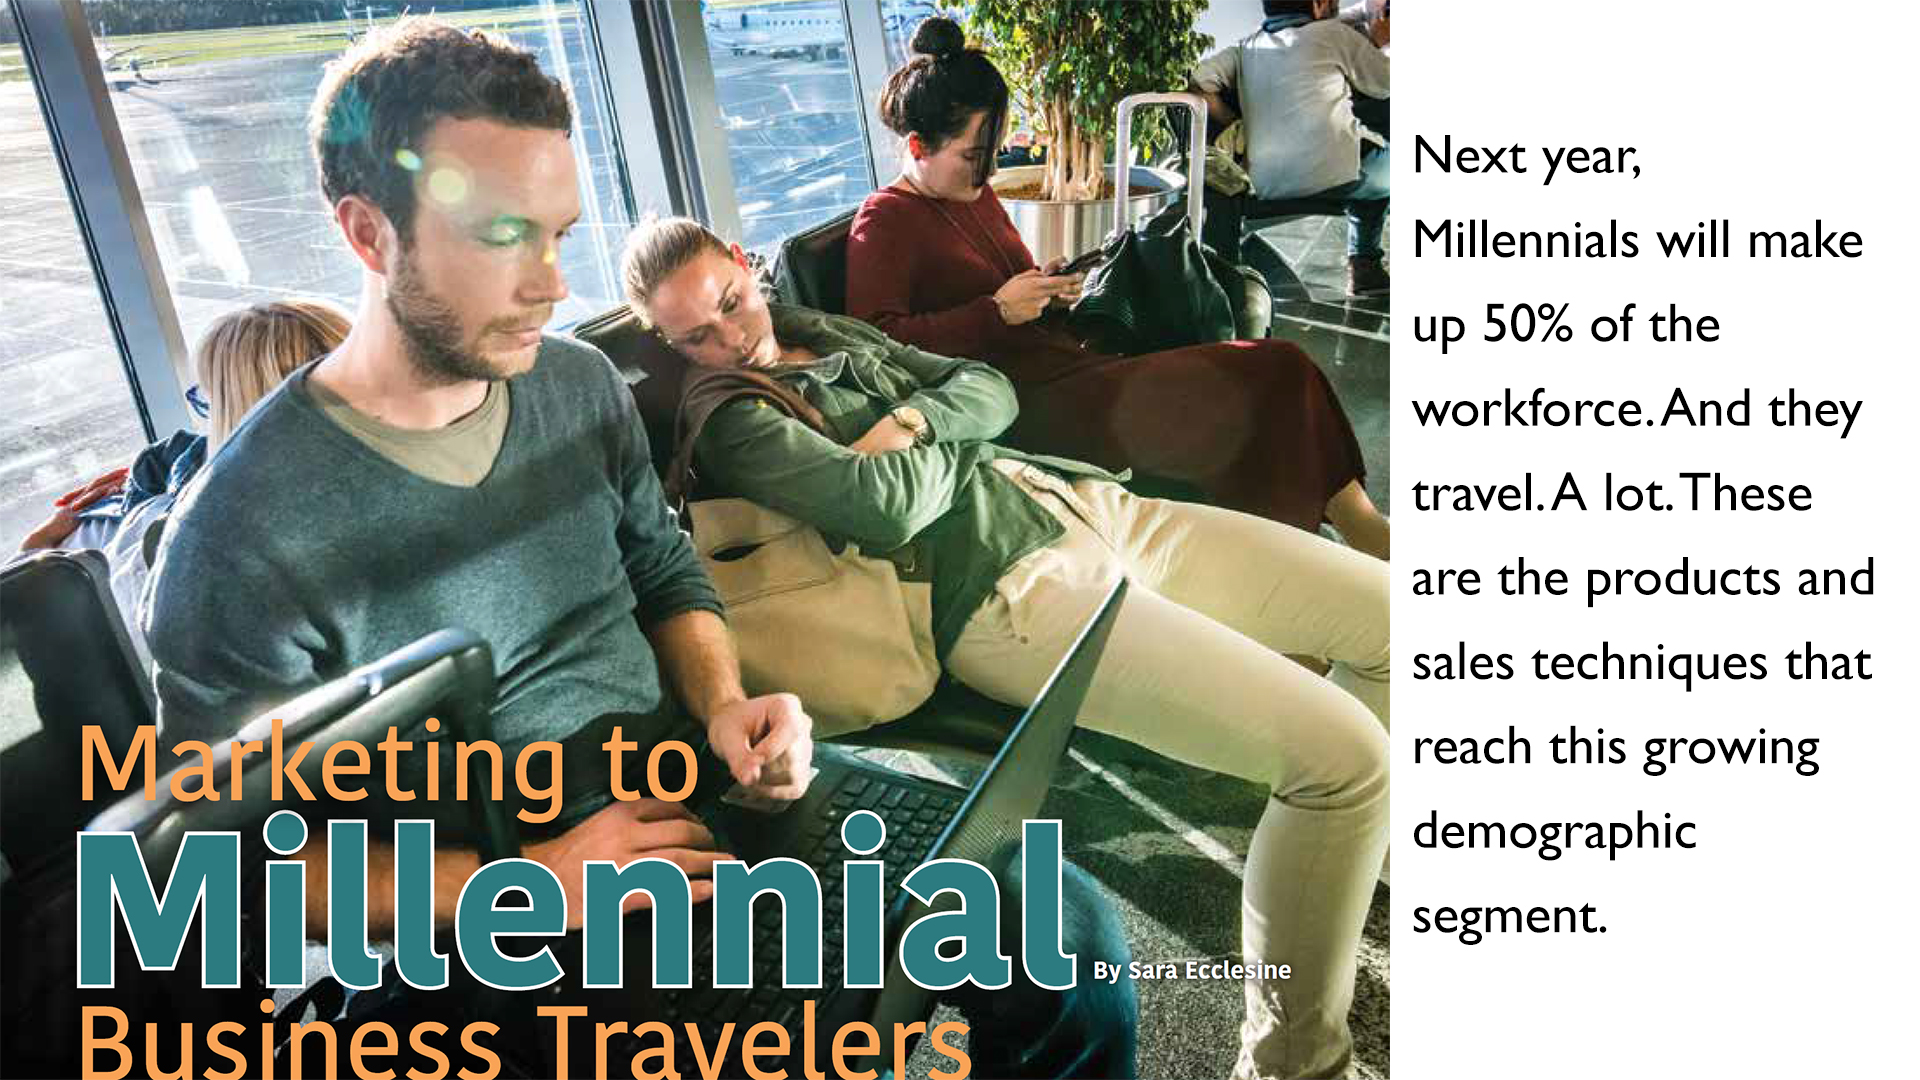 Marketing to Millennial Business Travelers